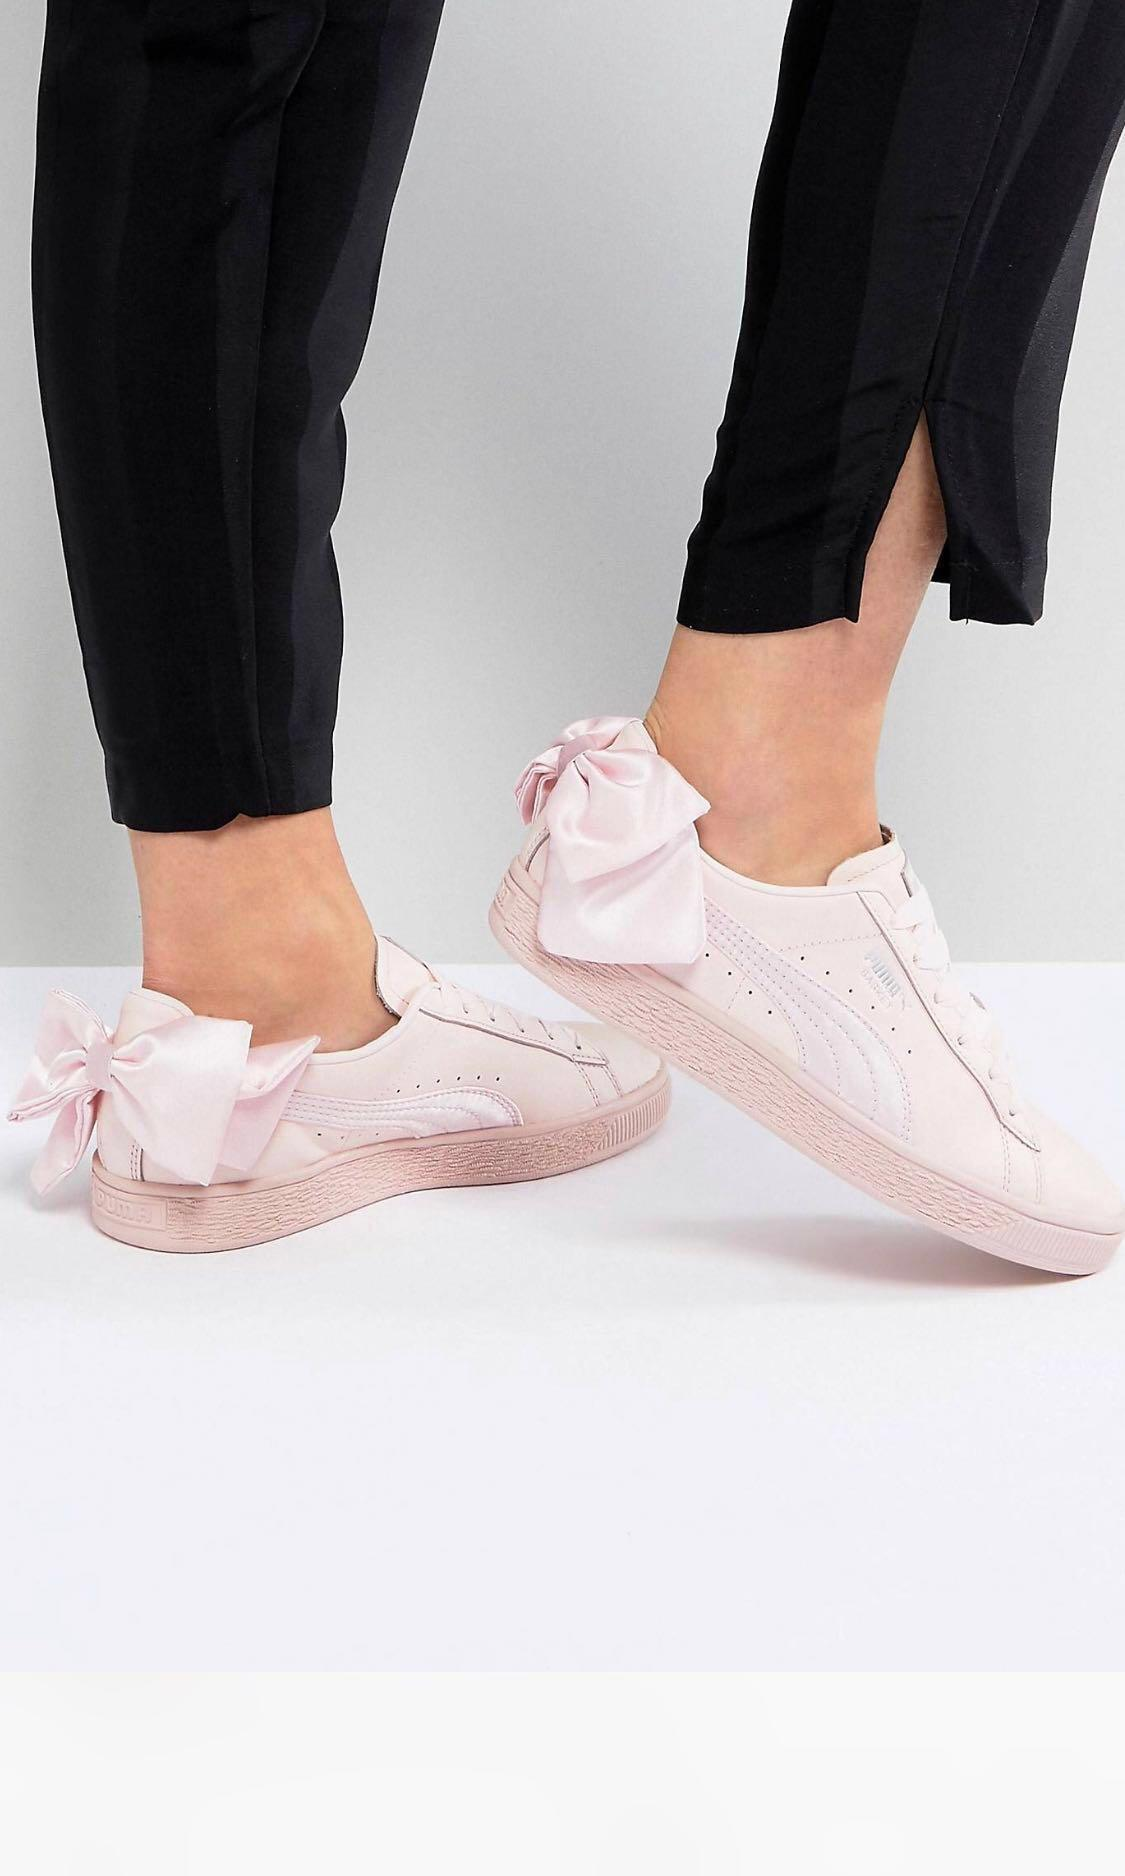 Puma Basket Bow Trainers in Pink, Women